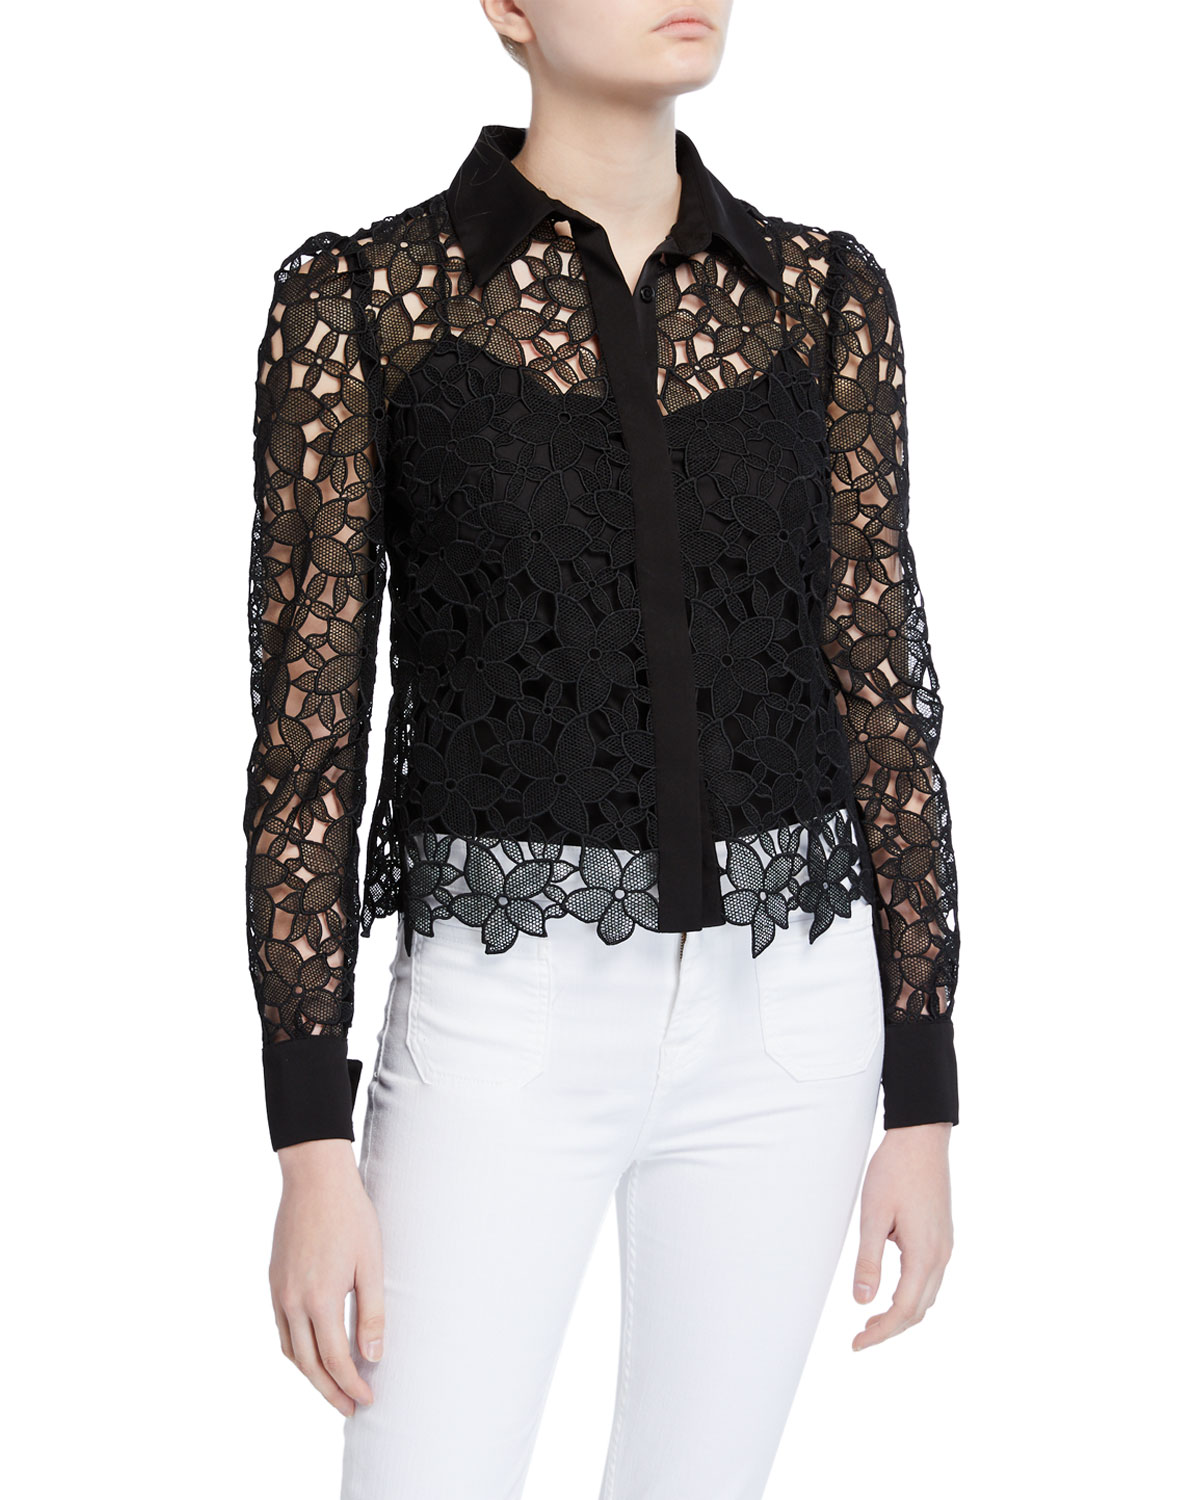 Milly Tops ELEANORA FLORAL GUIPURE LACE BUTTON-DOWN TOP